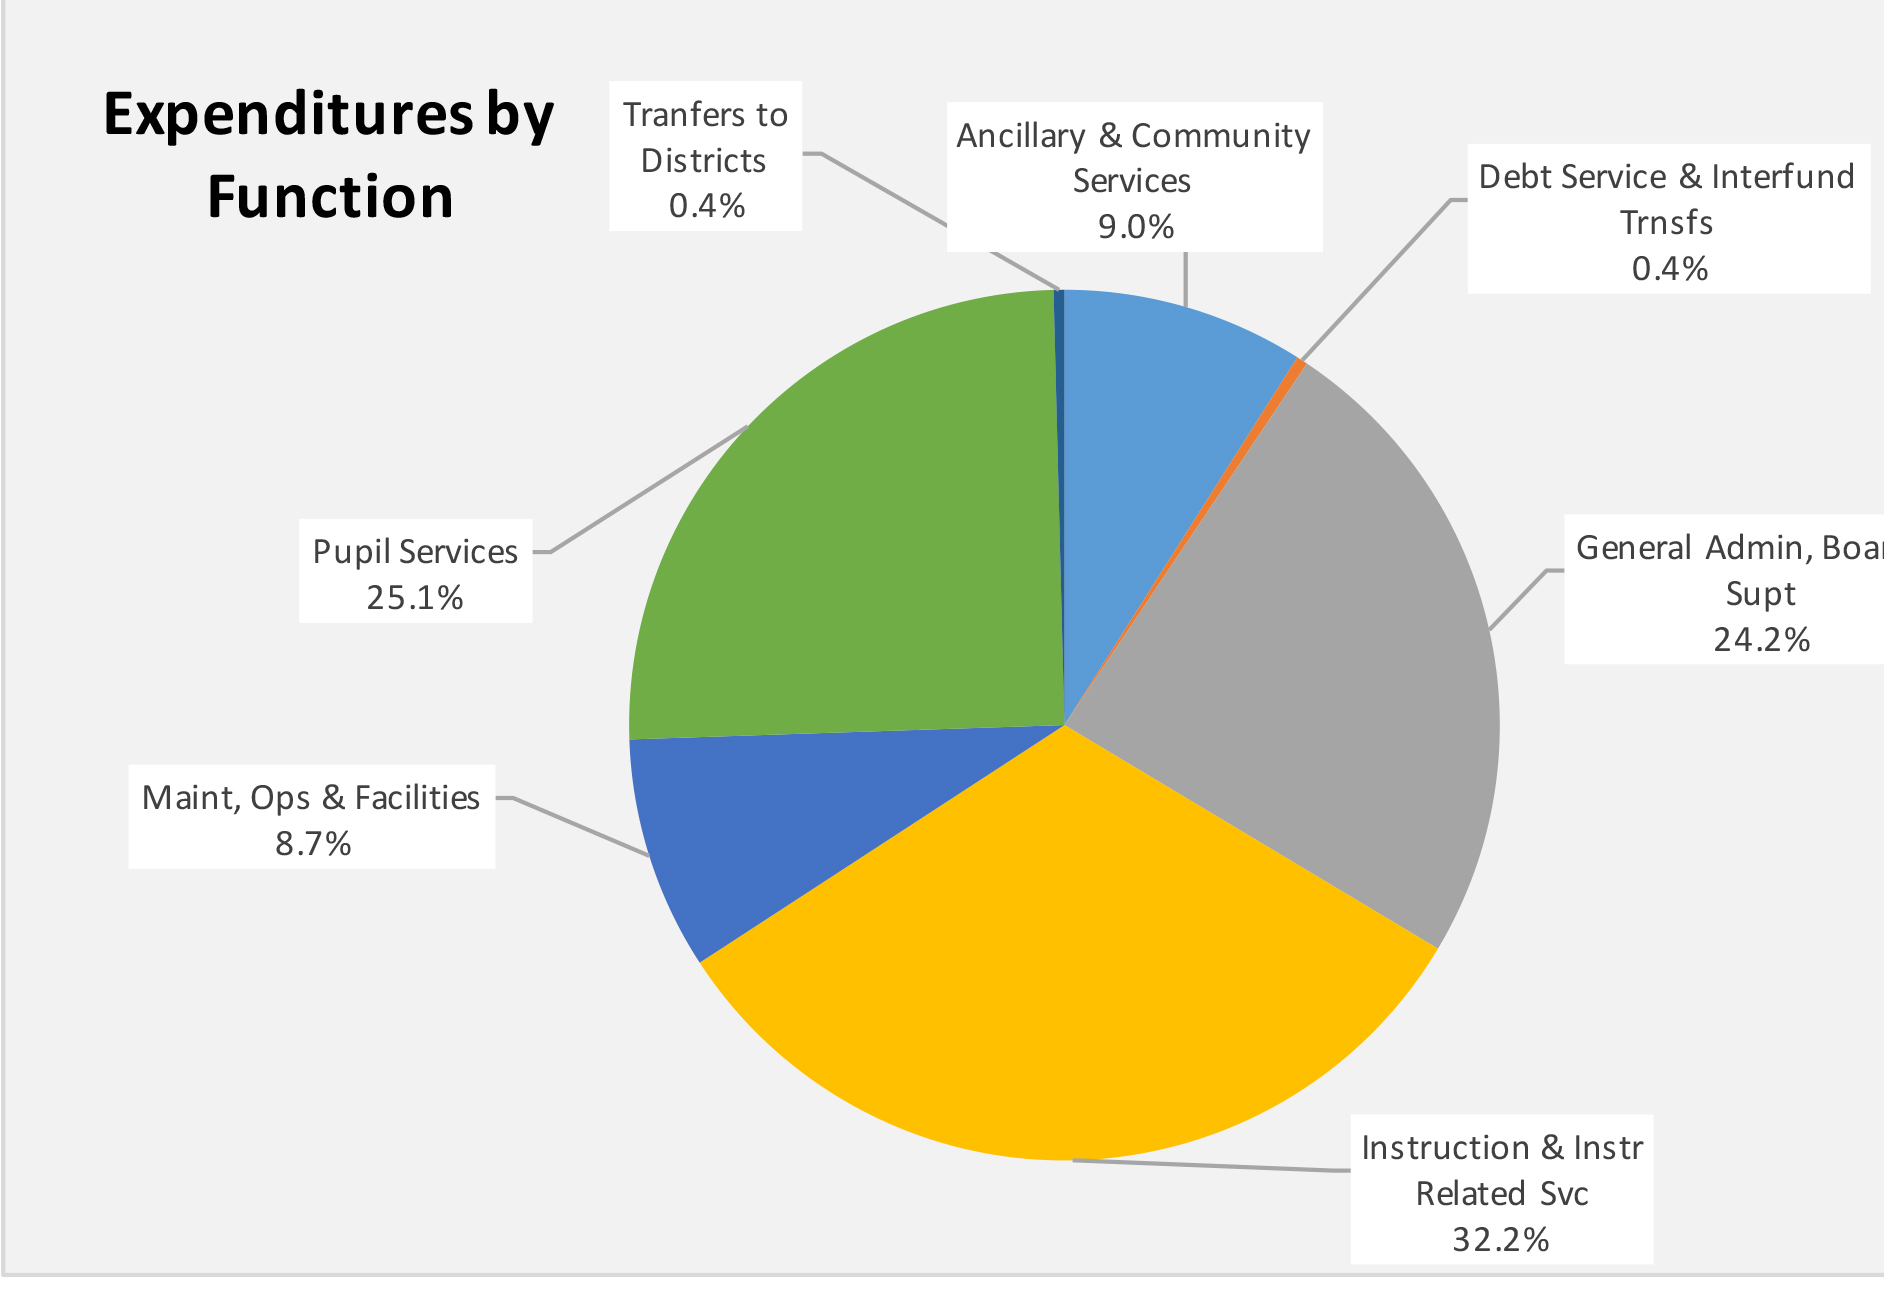 Pie chart presenting expenditures by function